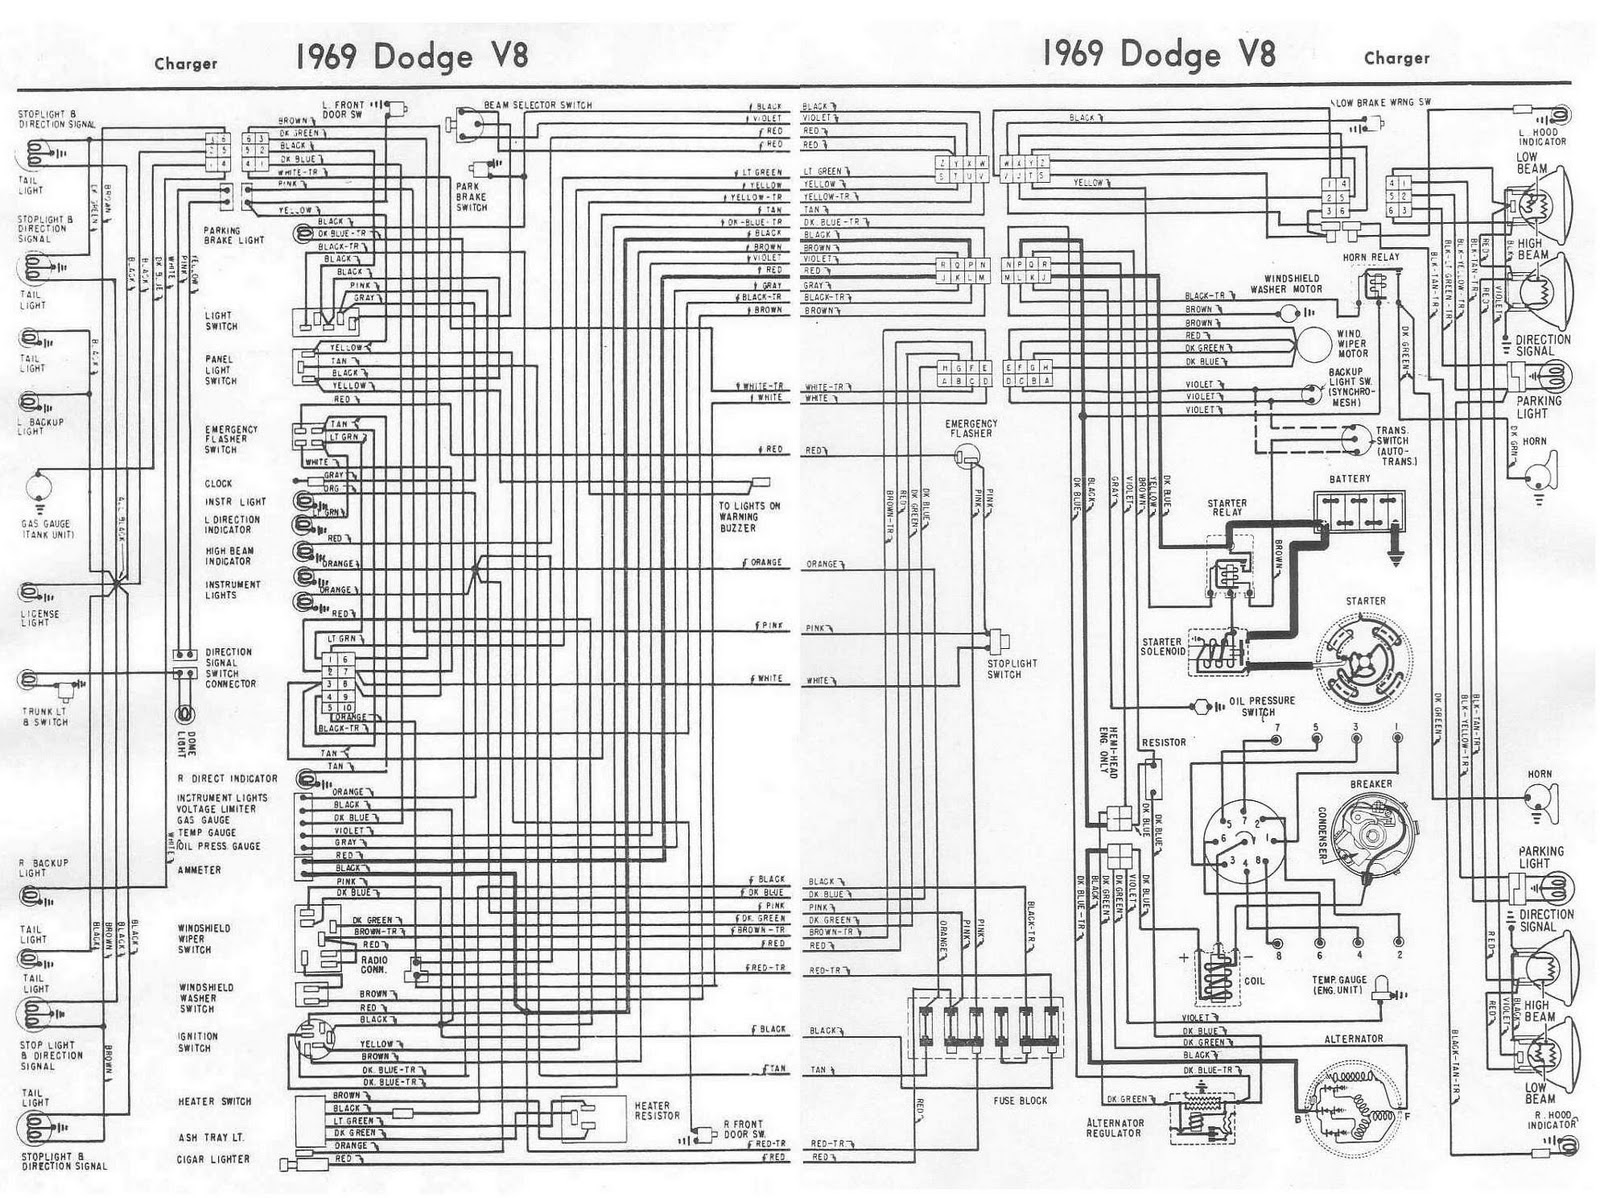 [TBQL_4184]  1967 Dodge Wiring Diagram Diagram Base Website Wiring Diagram -  NEWSVENNDIAGRAM.MUSEUMRELOADED.IT | Dodge Neon Wiring Diagram Free |  | Diagram Base Website Full Edition - museumreloaded.it